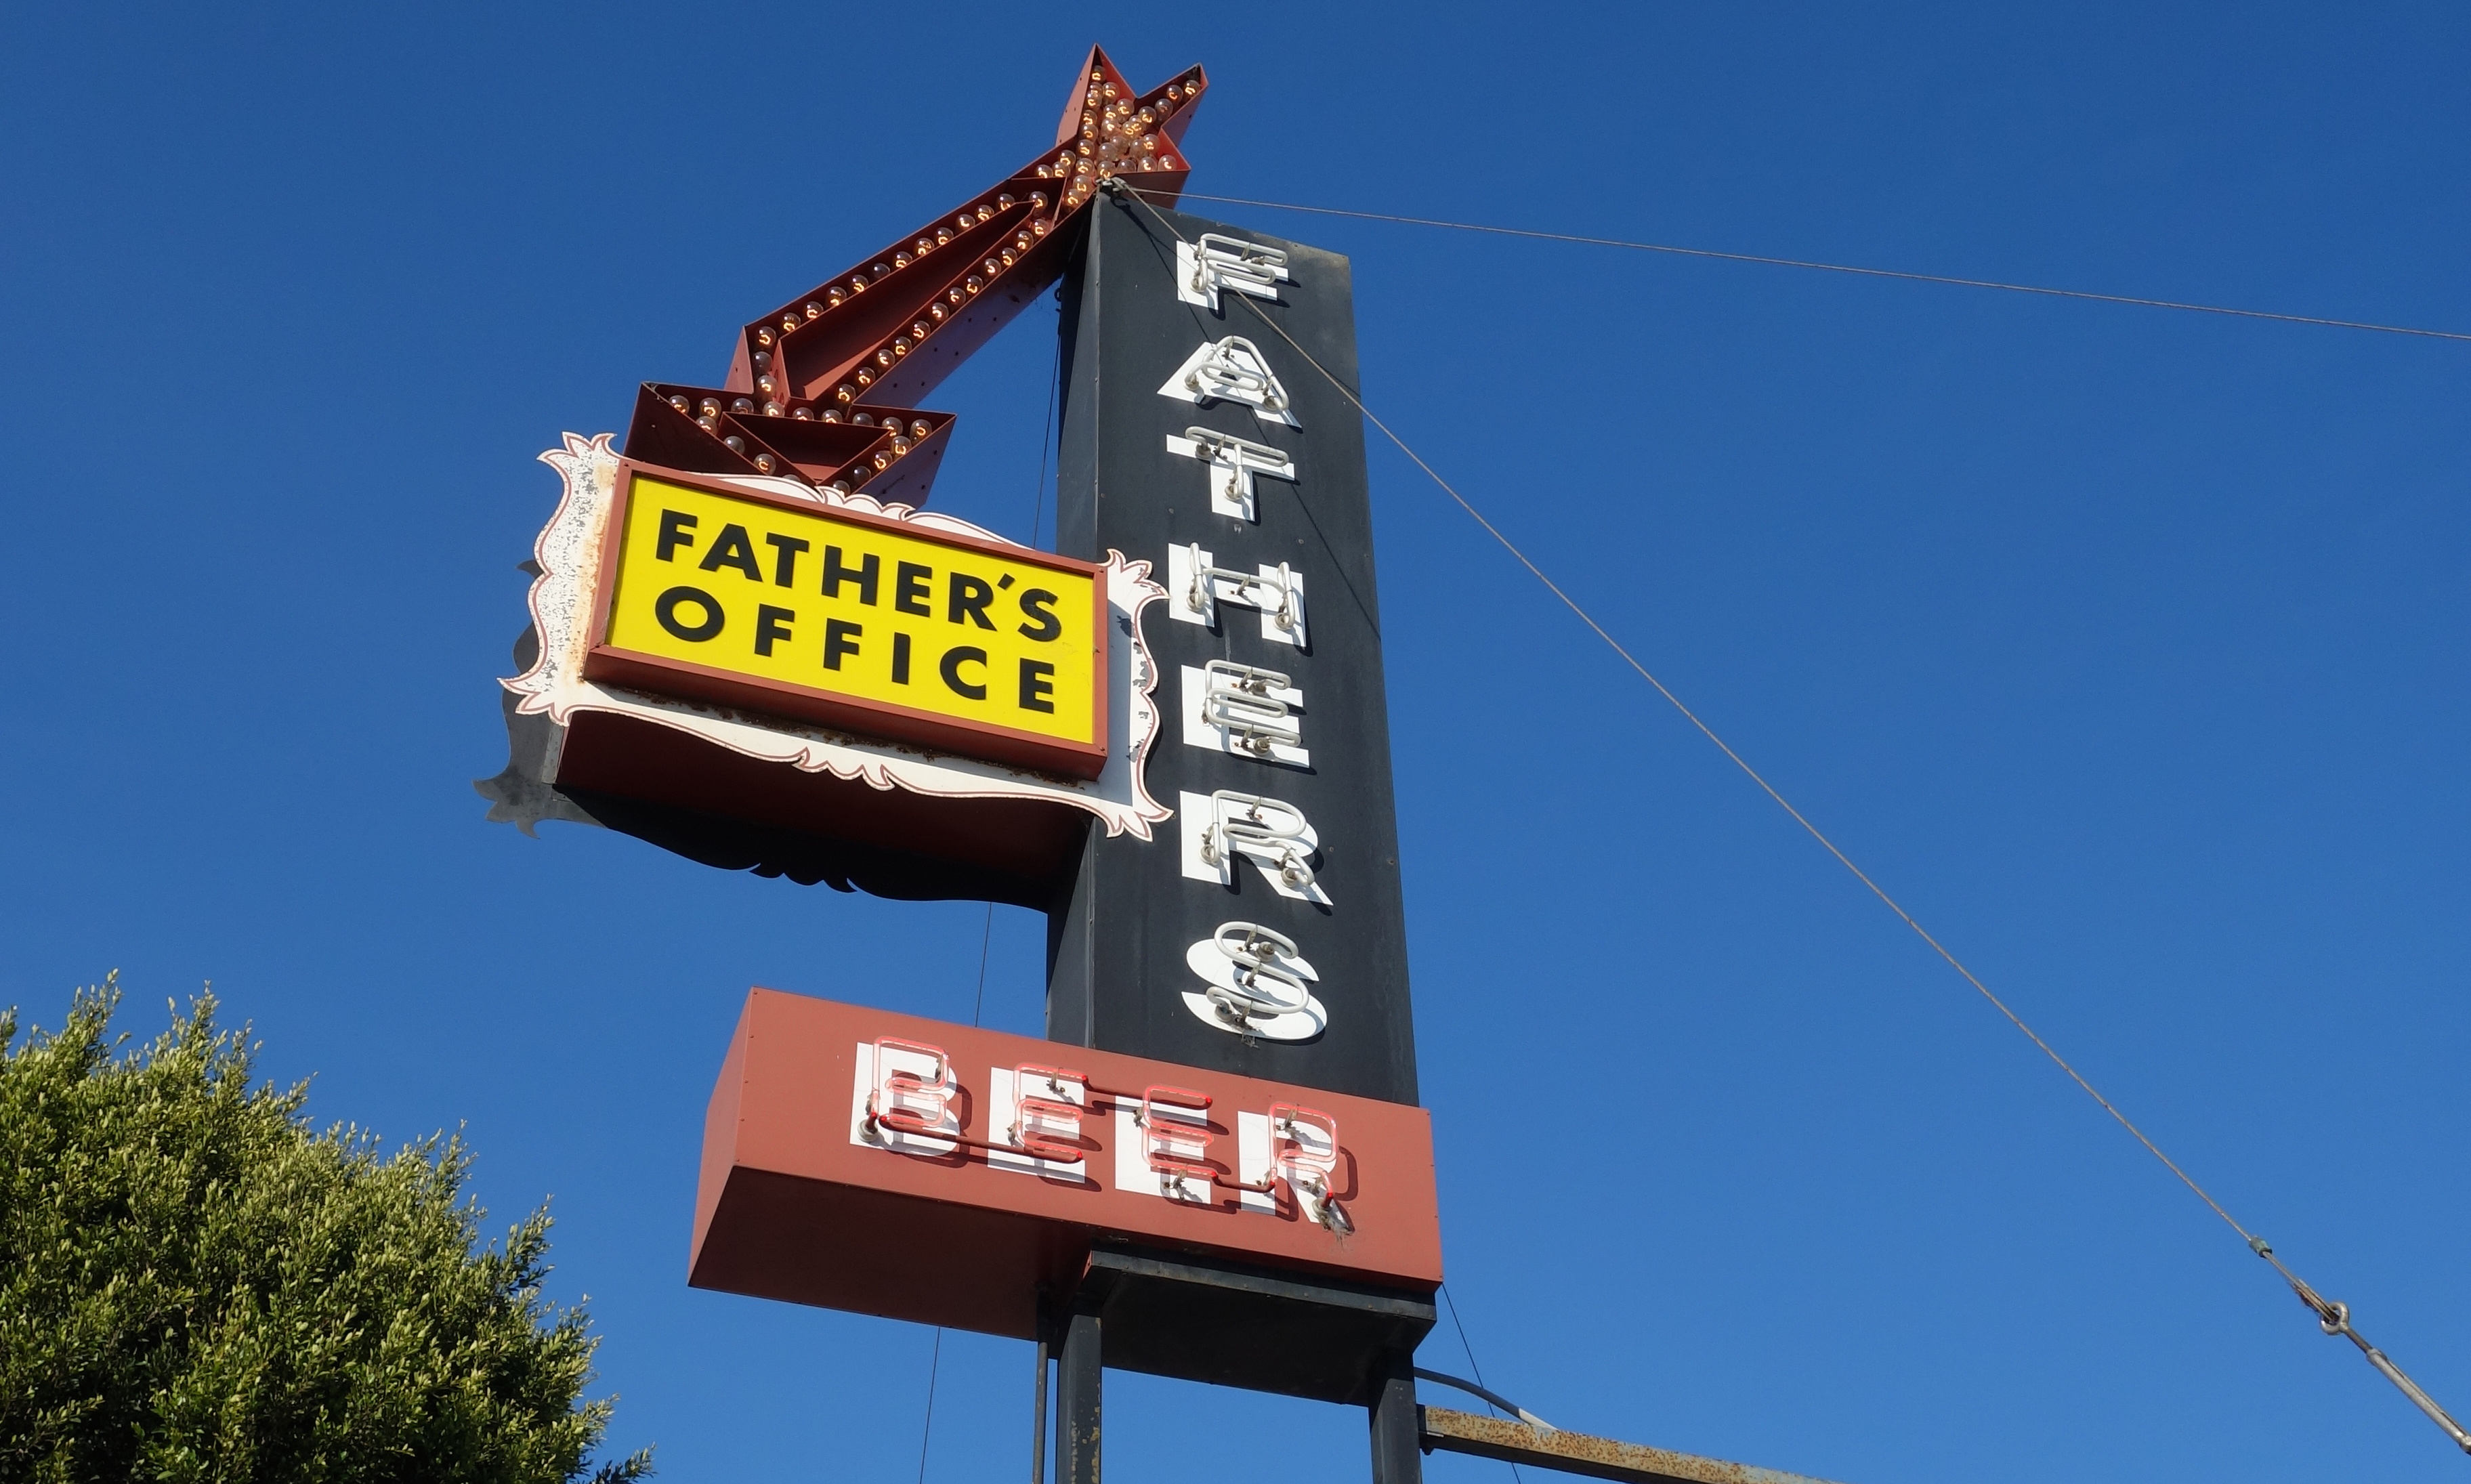 Father's Office, Los Angeles